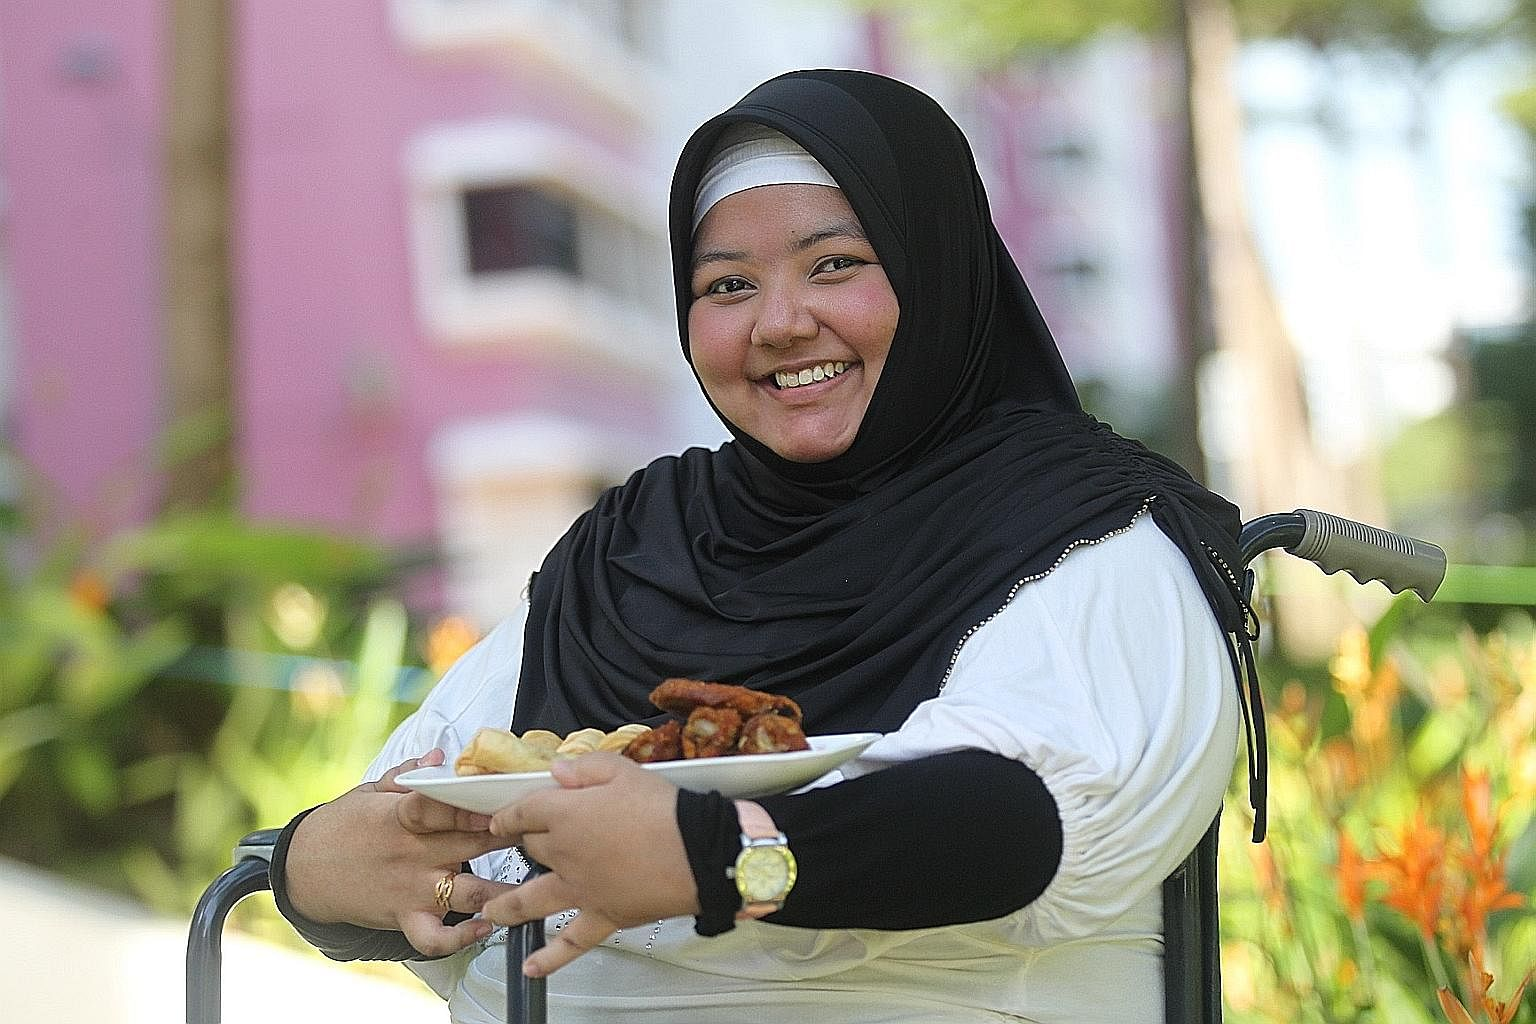 Ms Noor Ain Masaid, who used to be bedridden, started her ChixCheese food business in 2007. Today, she is able to produce the food on her own and donates profits from some orders to those in need.